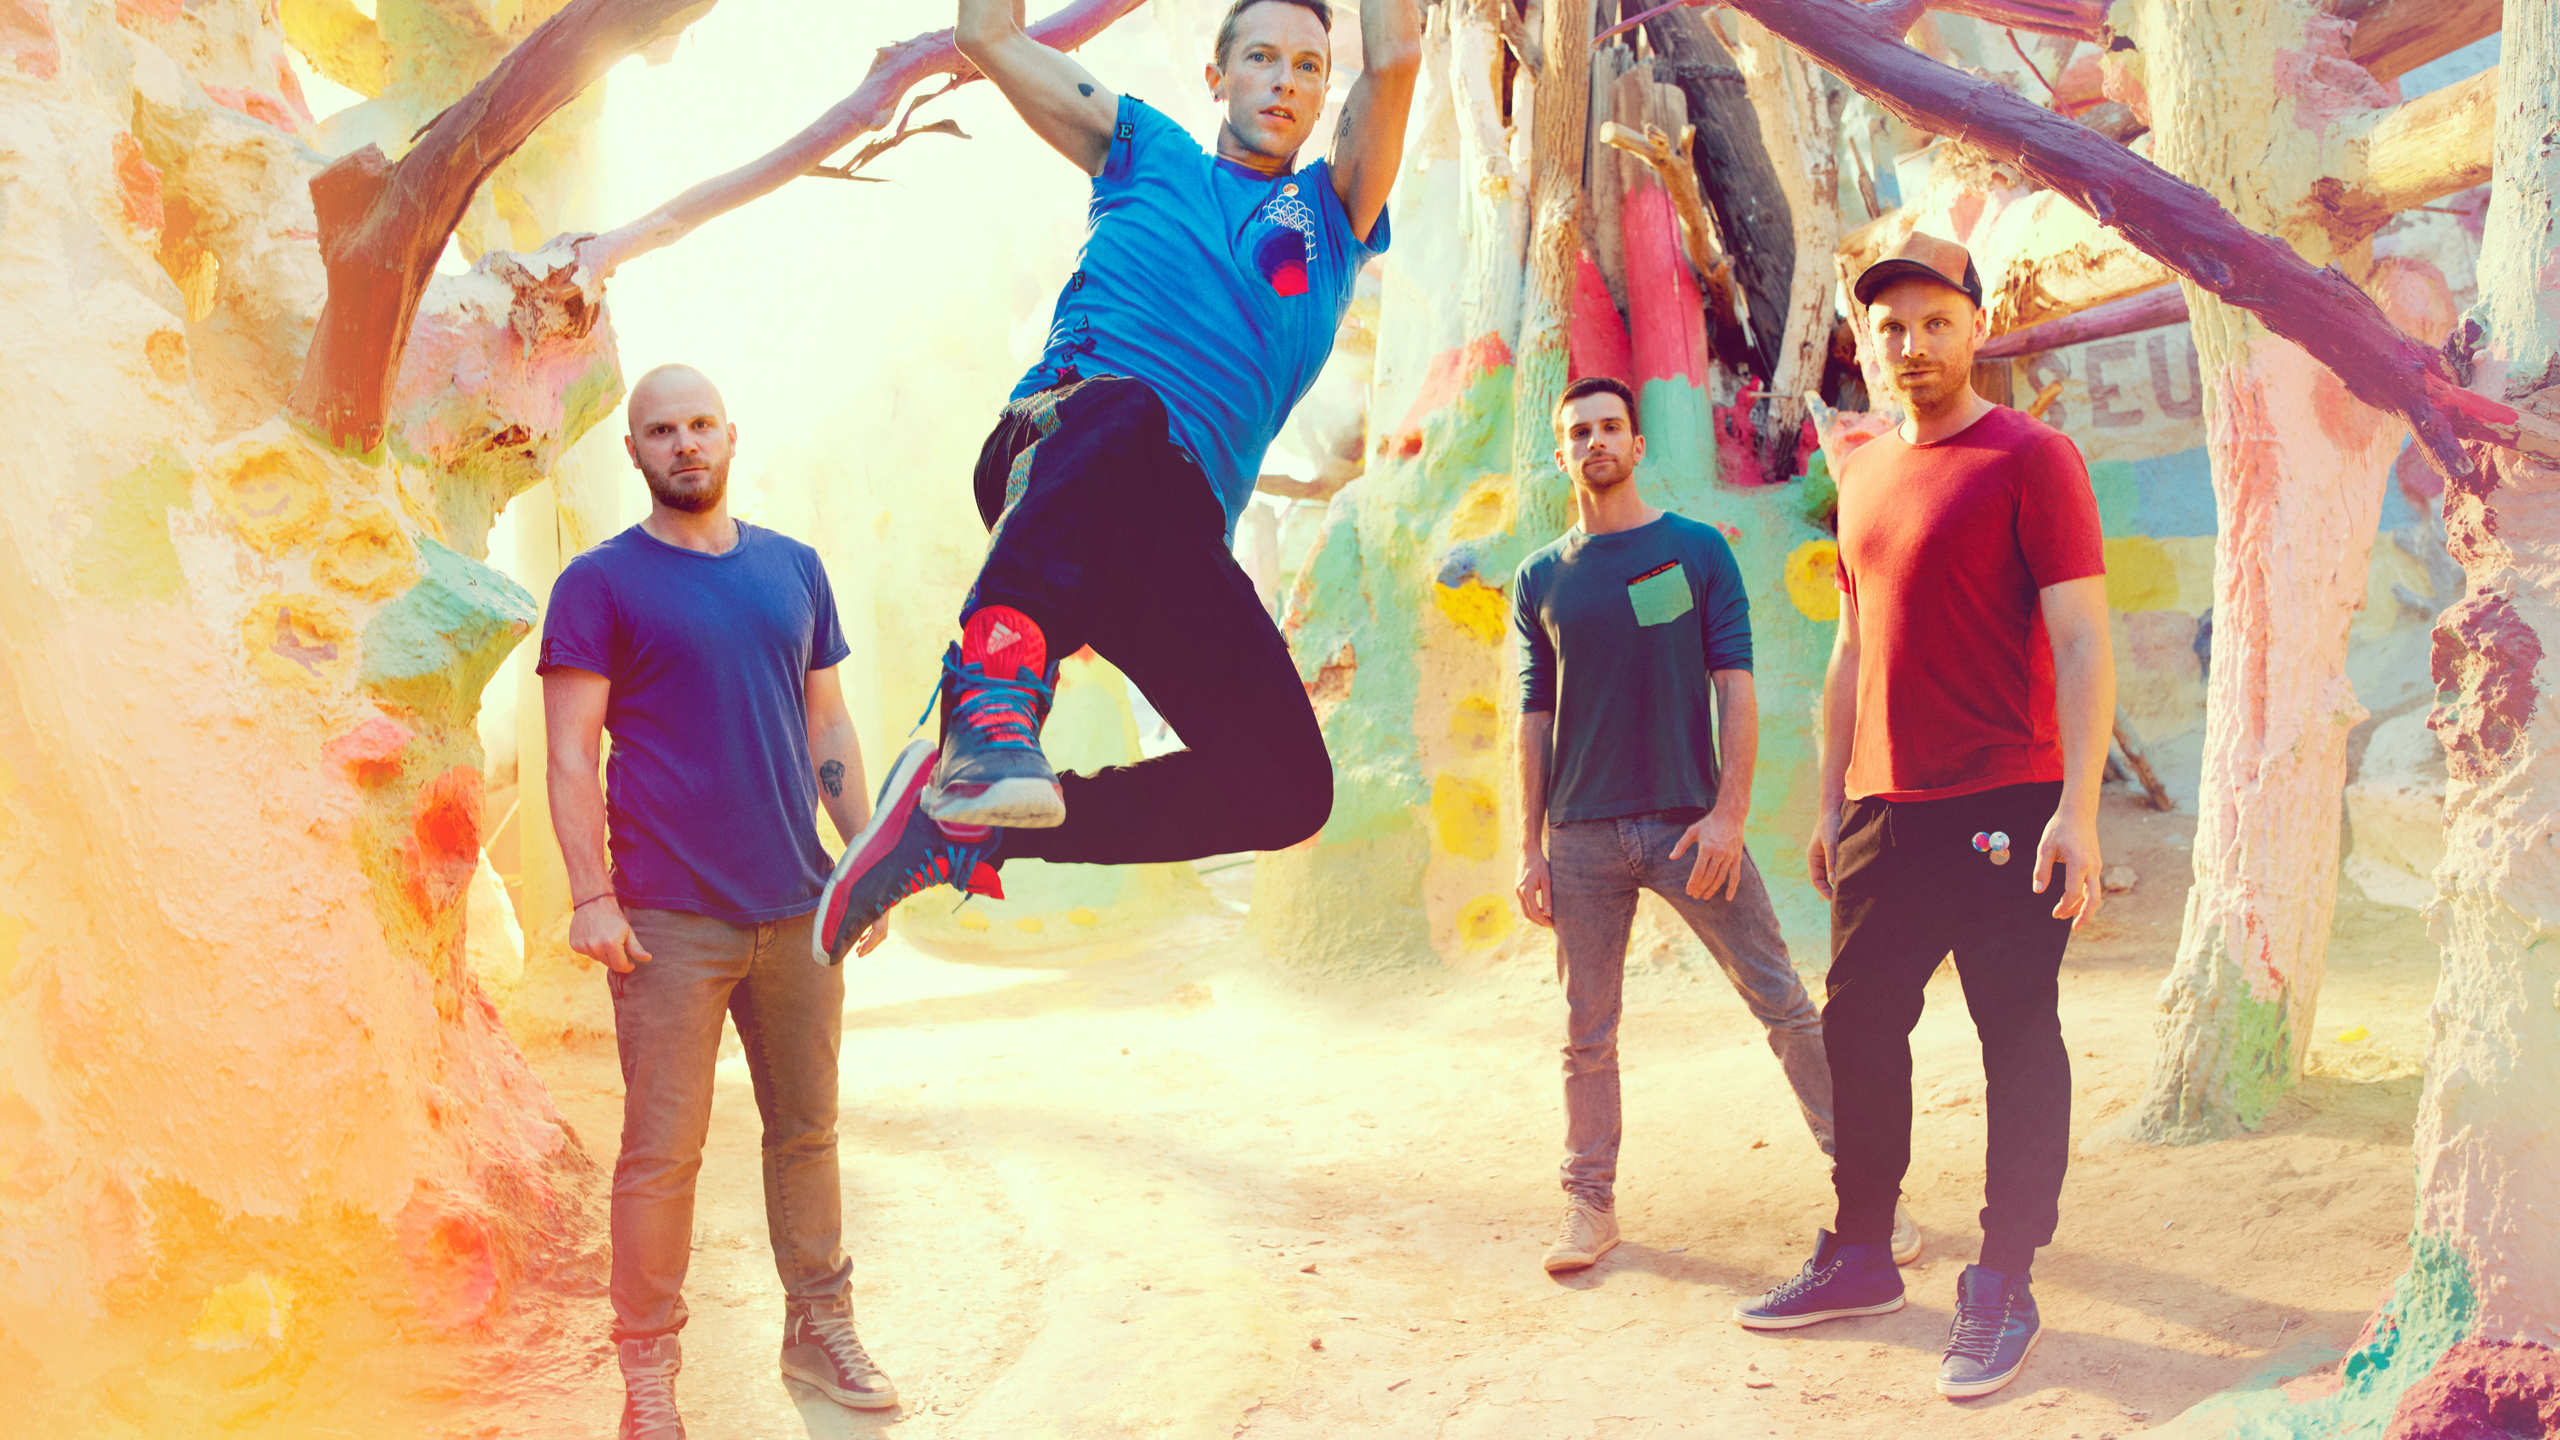 2560x1440 coldplay rock band 1440p resolution hd 4k wallpapers coldplay rock band pcg voltagebd Gallery